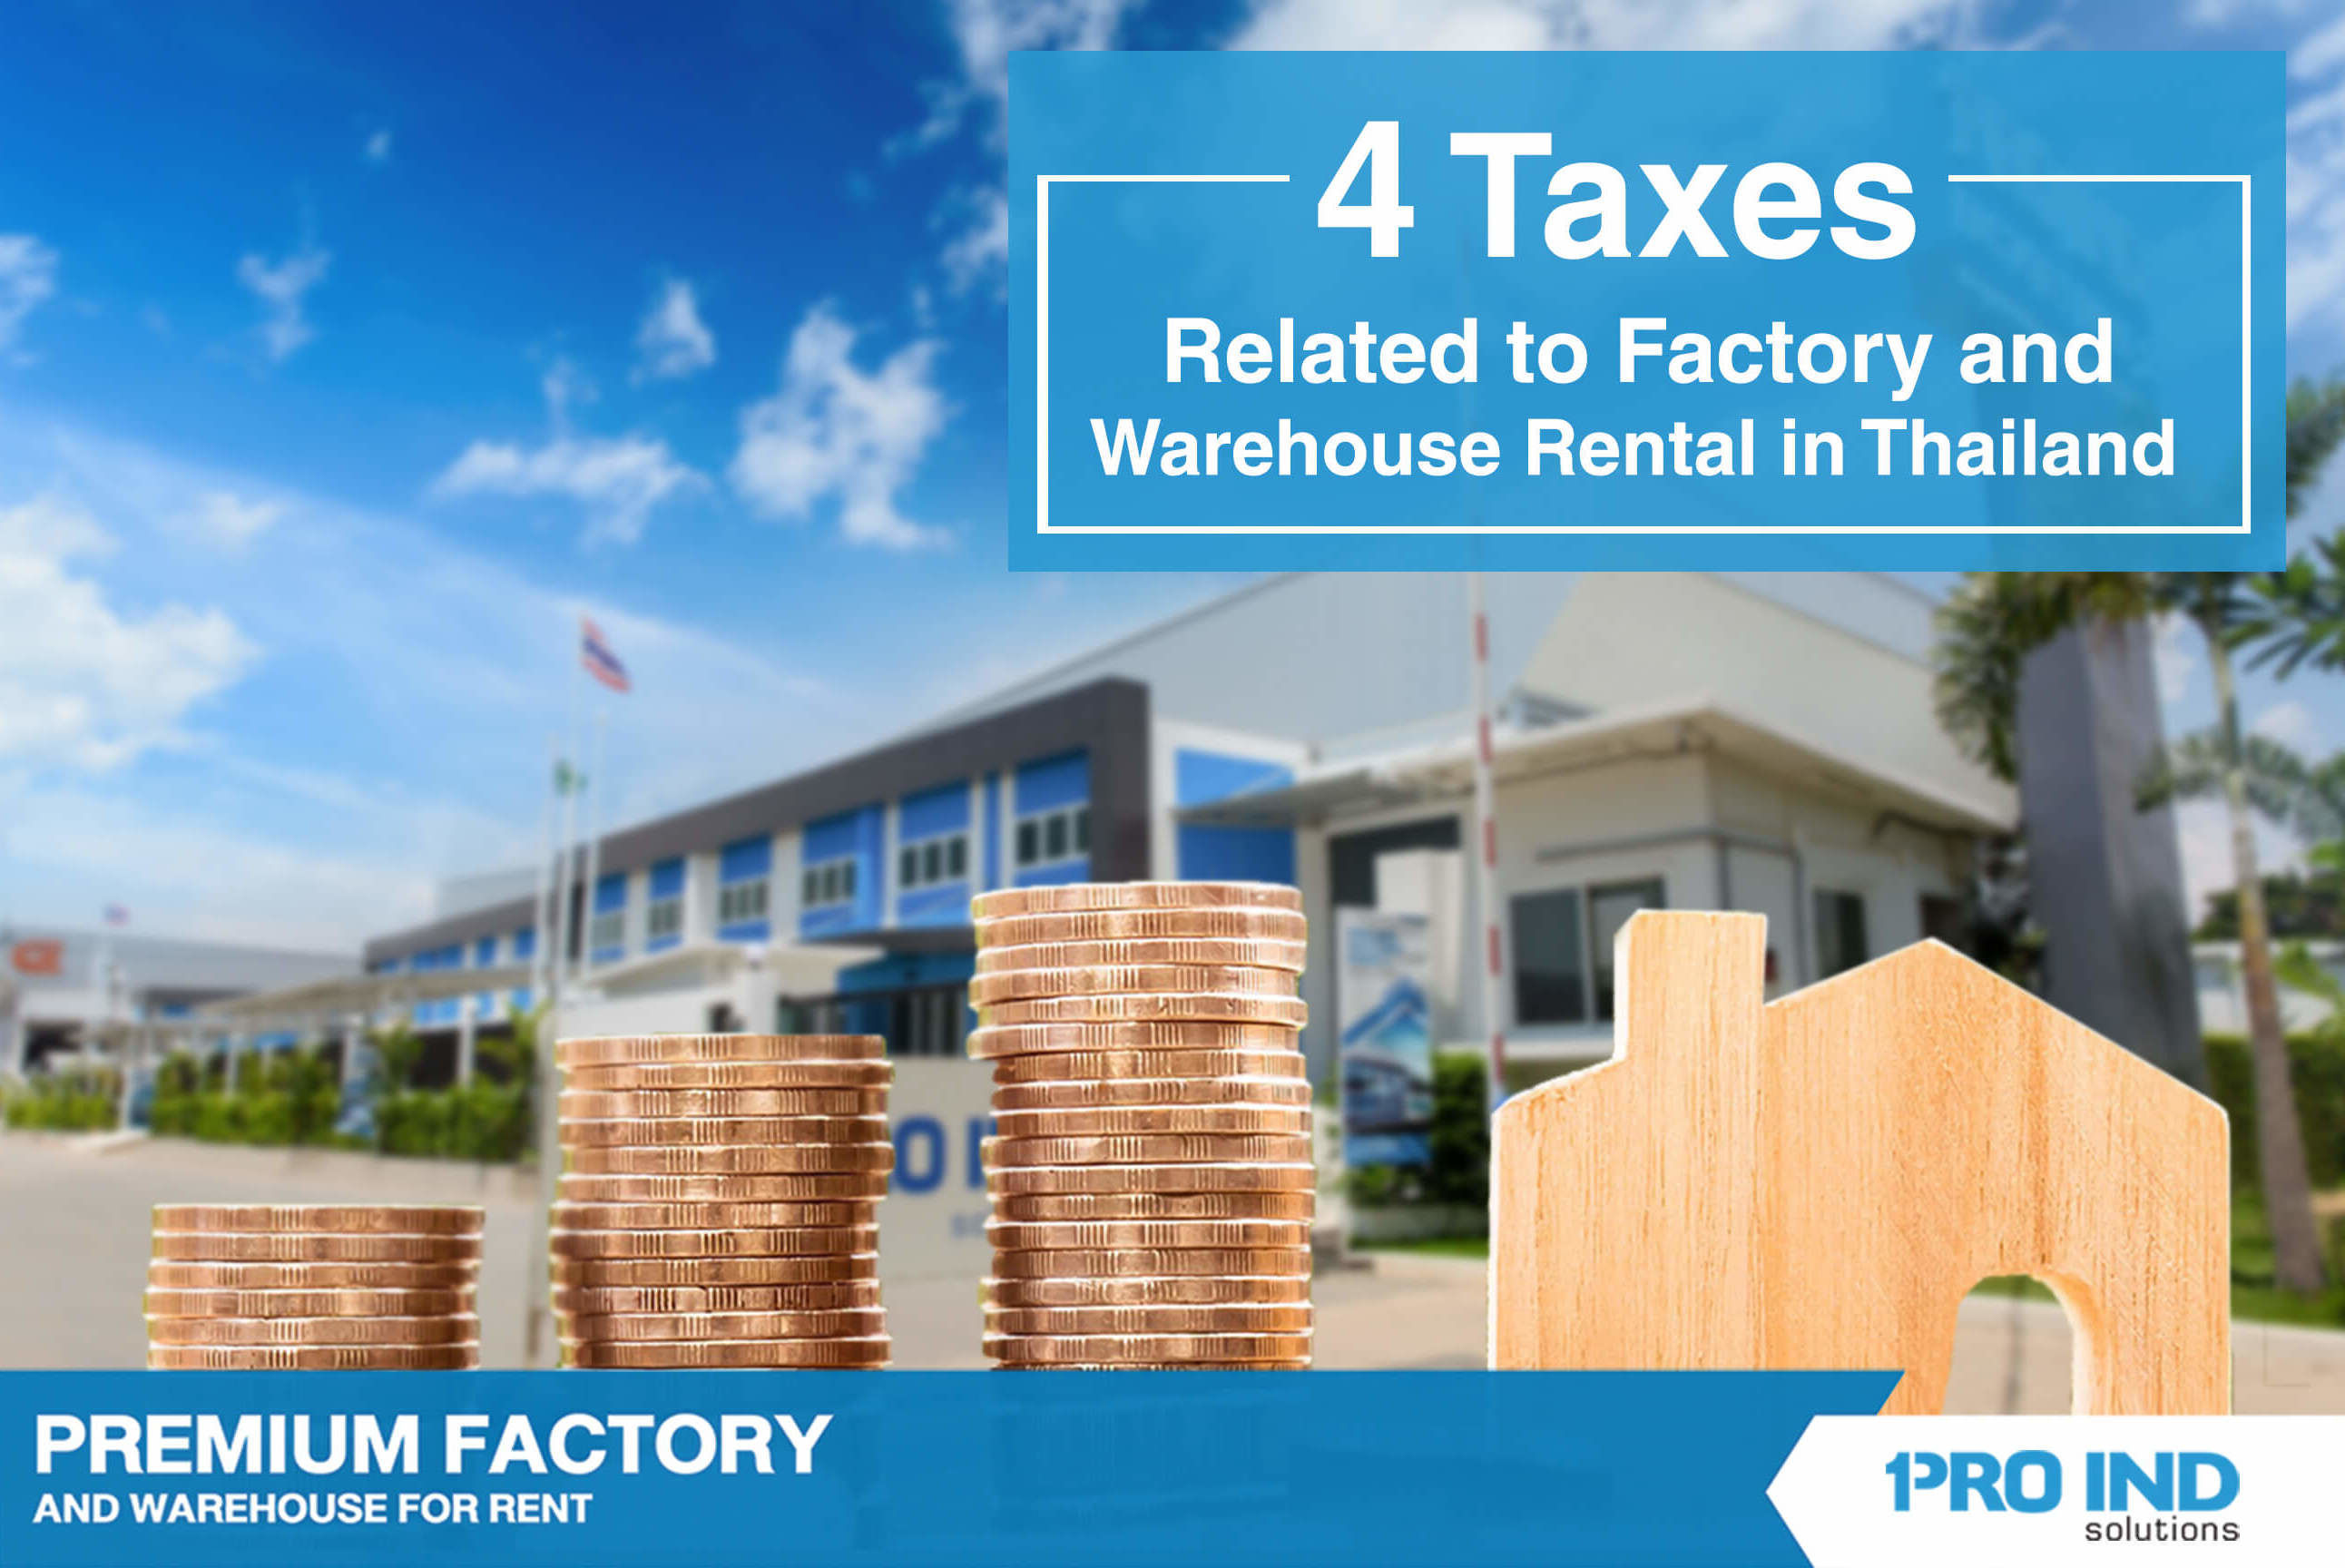 4 Taxes Related to Factory and Warehouse Rental in Thailand